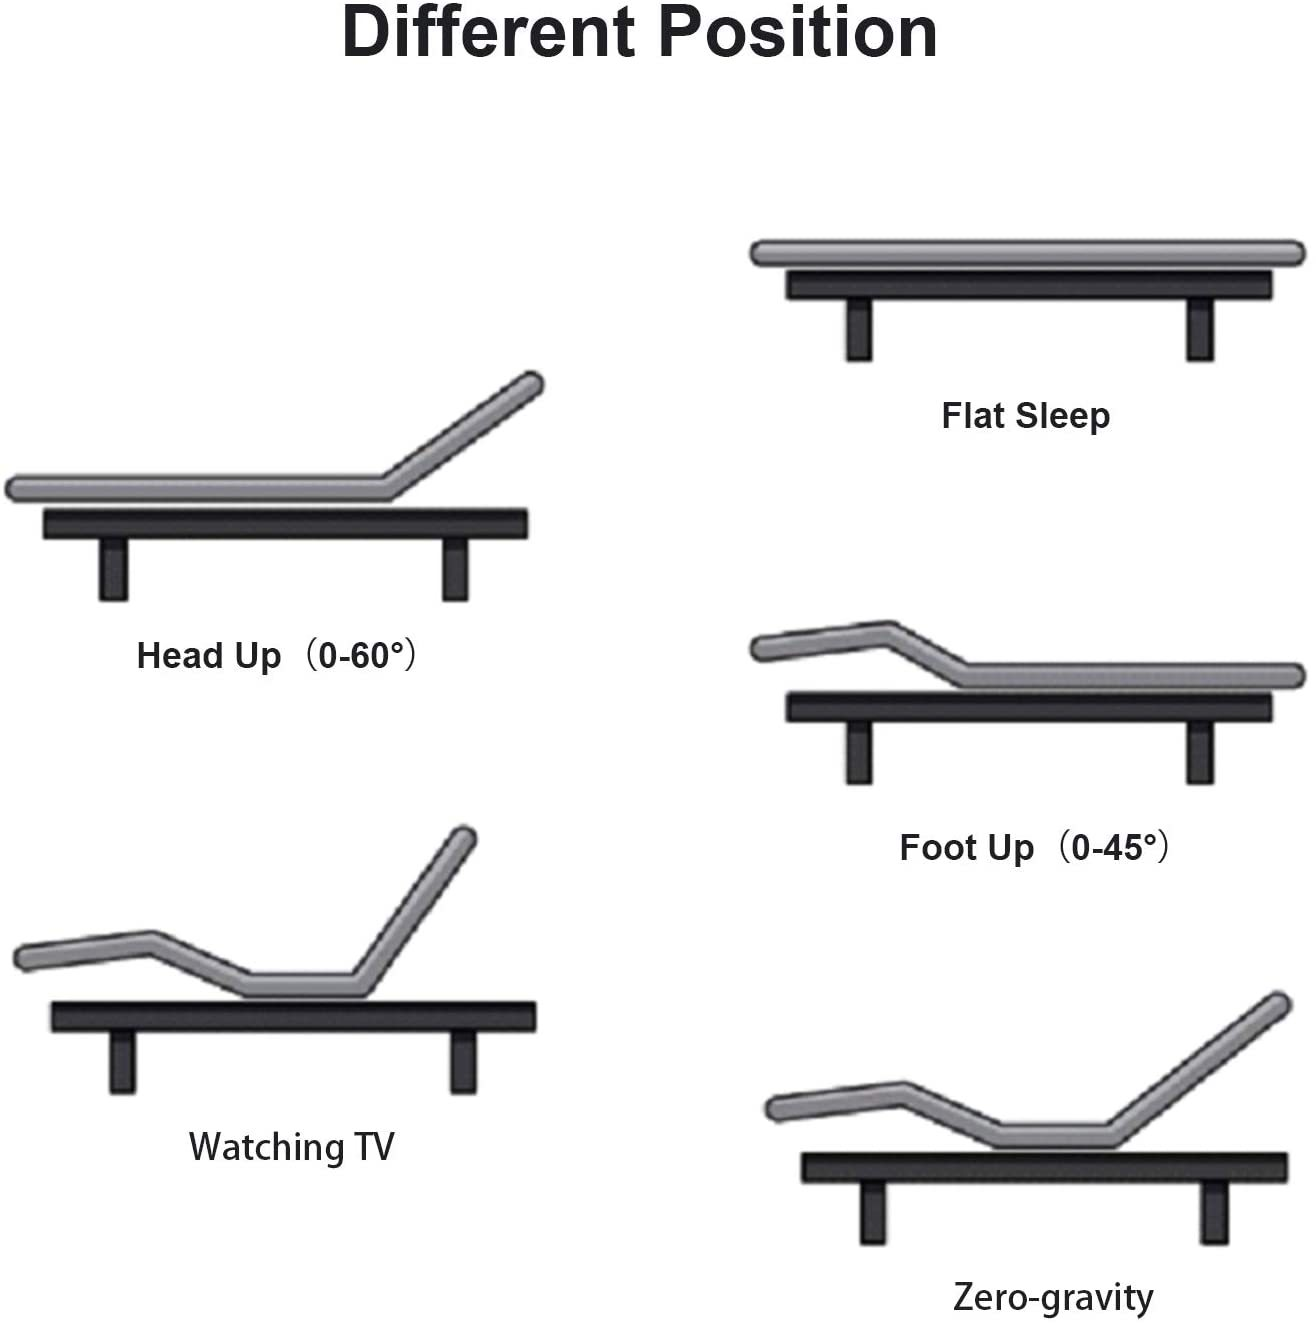 BAHOM Adjustable Bed - Positions